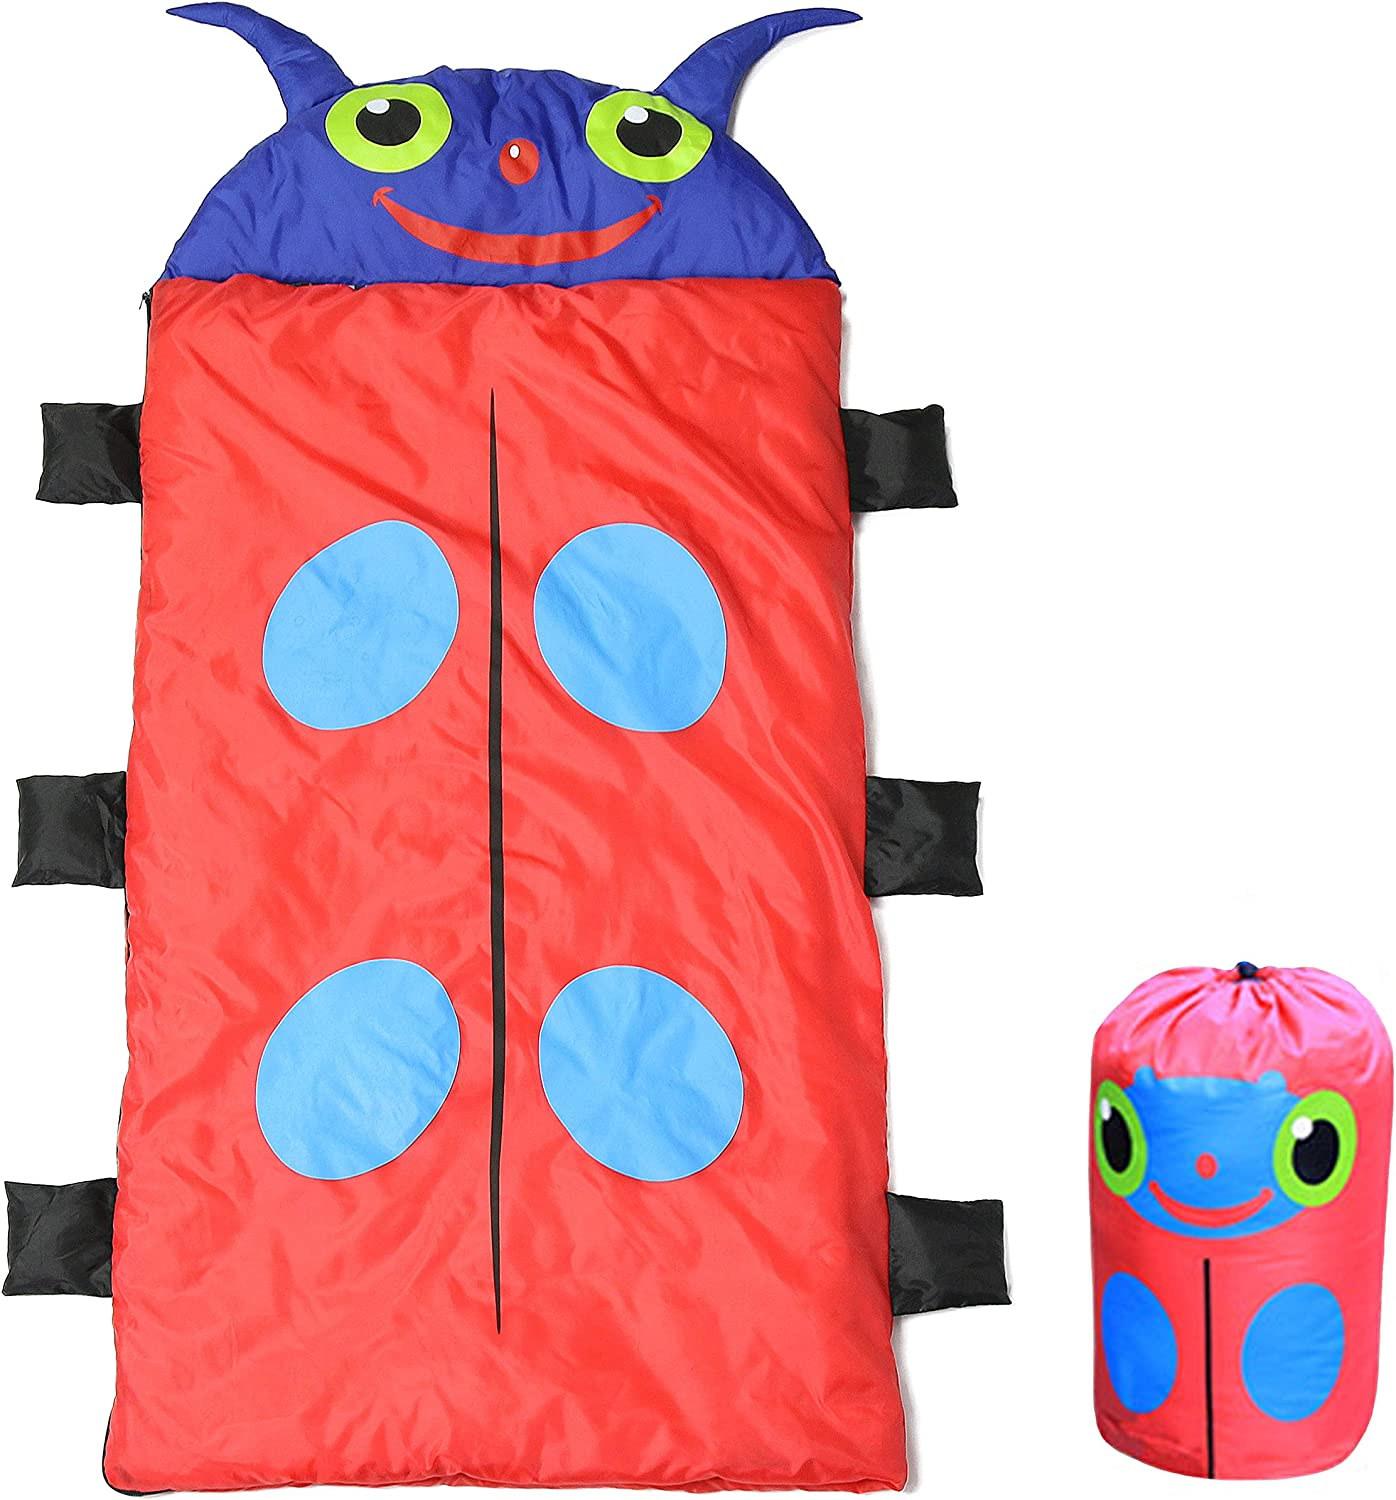 Sanfiago Child Sleeping Bag Premium Fabric Exterior Cotton Interior Matching A Storage Bag Camping Indoor Outdoor Use